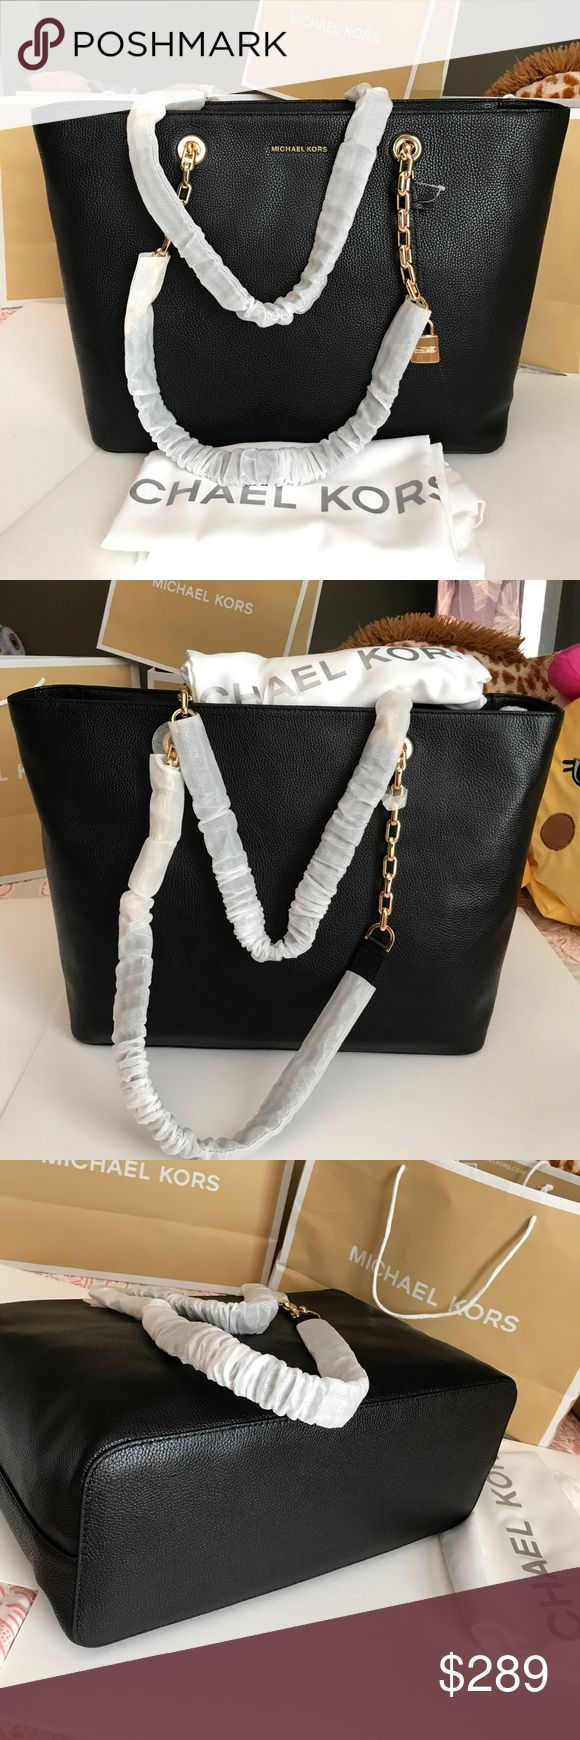 🌴Michael Kors Bag🌴 100% Authentic Michael Kors Tote Bag, brand new with tag!.😍😍😍come with dust bag. Michael Kors Bags Totes